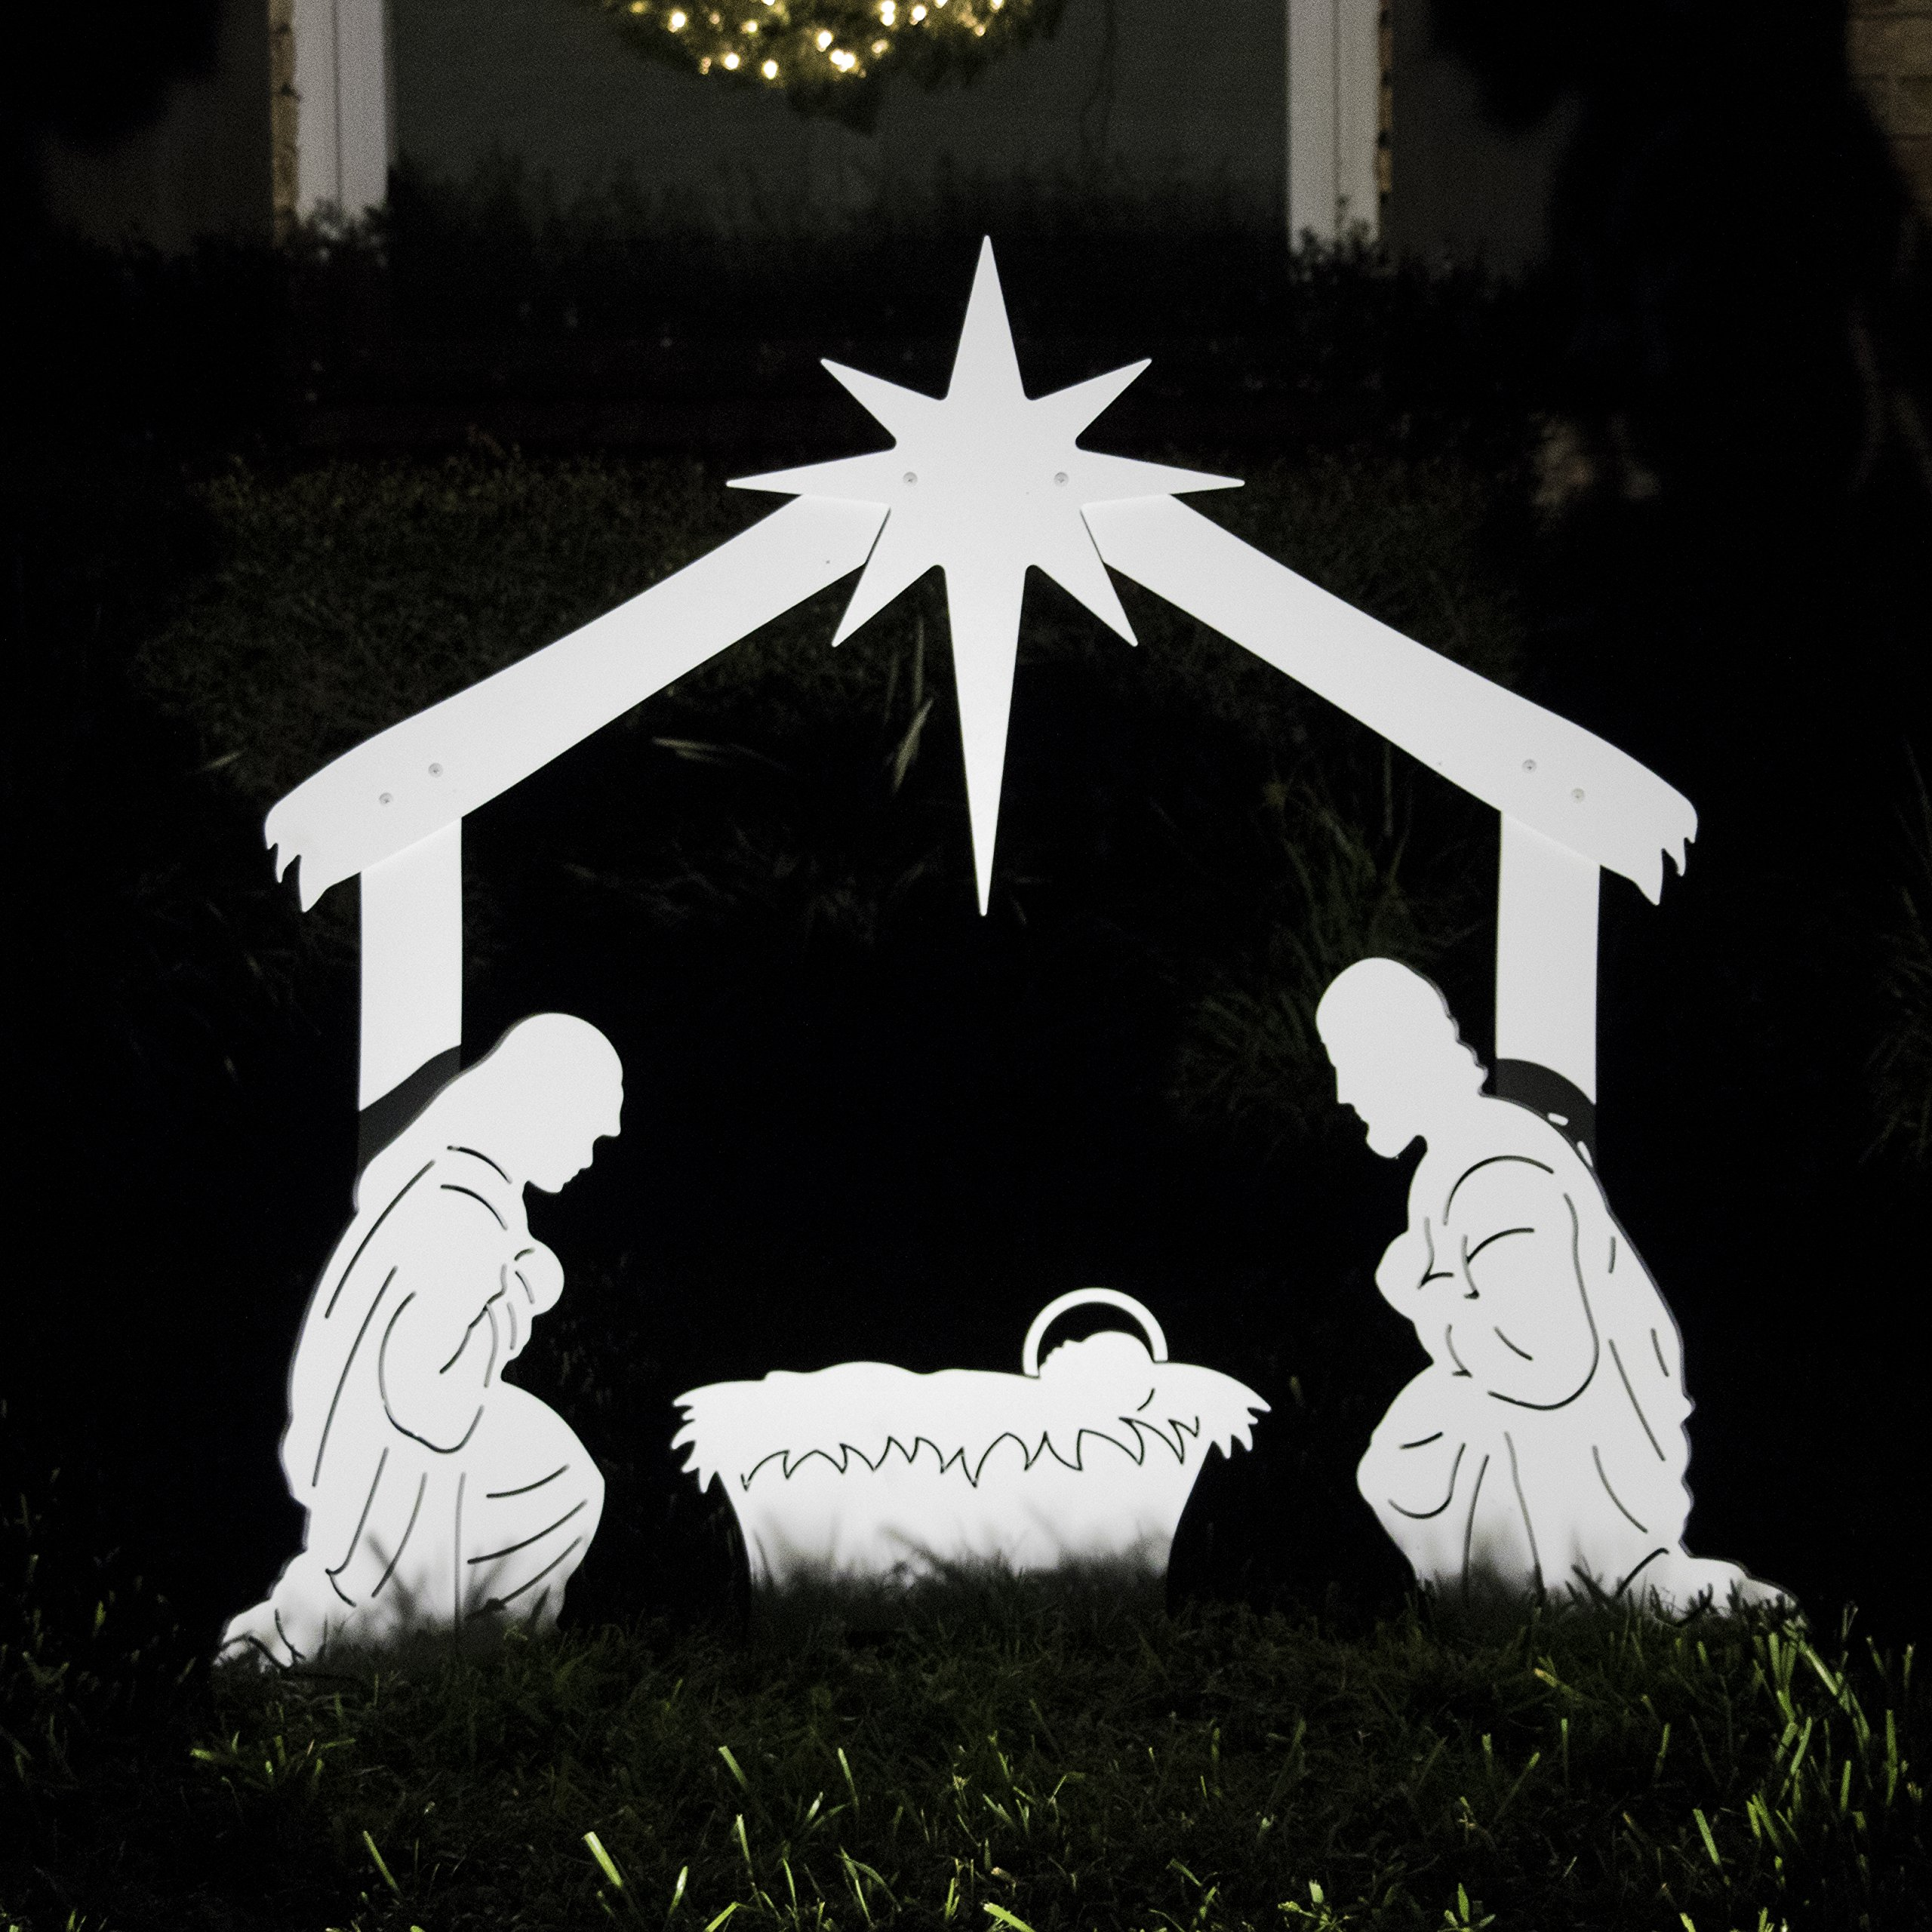 Best rated in outdoor nativity scenes helpful customer reviews teak isle outdoor nativity scene holy family yard nativity set product image solutioingenieria Gallery